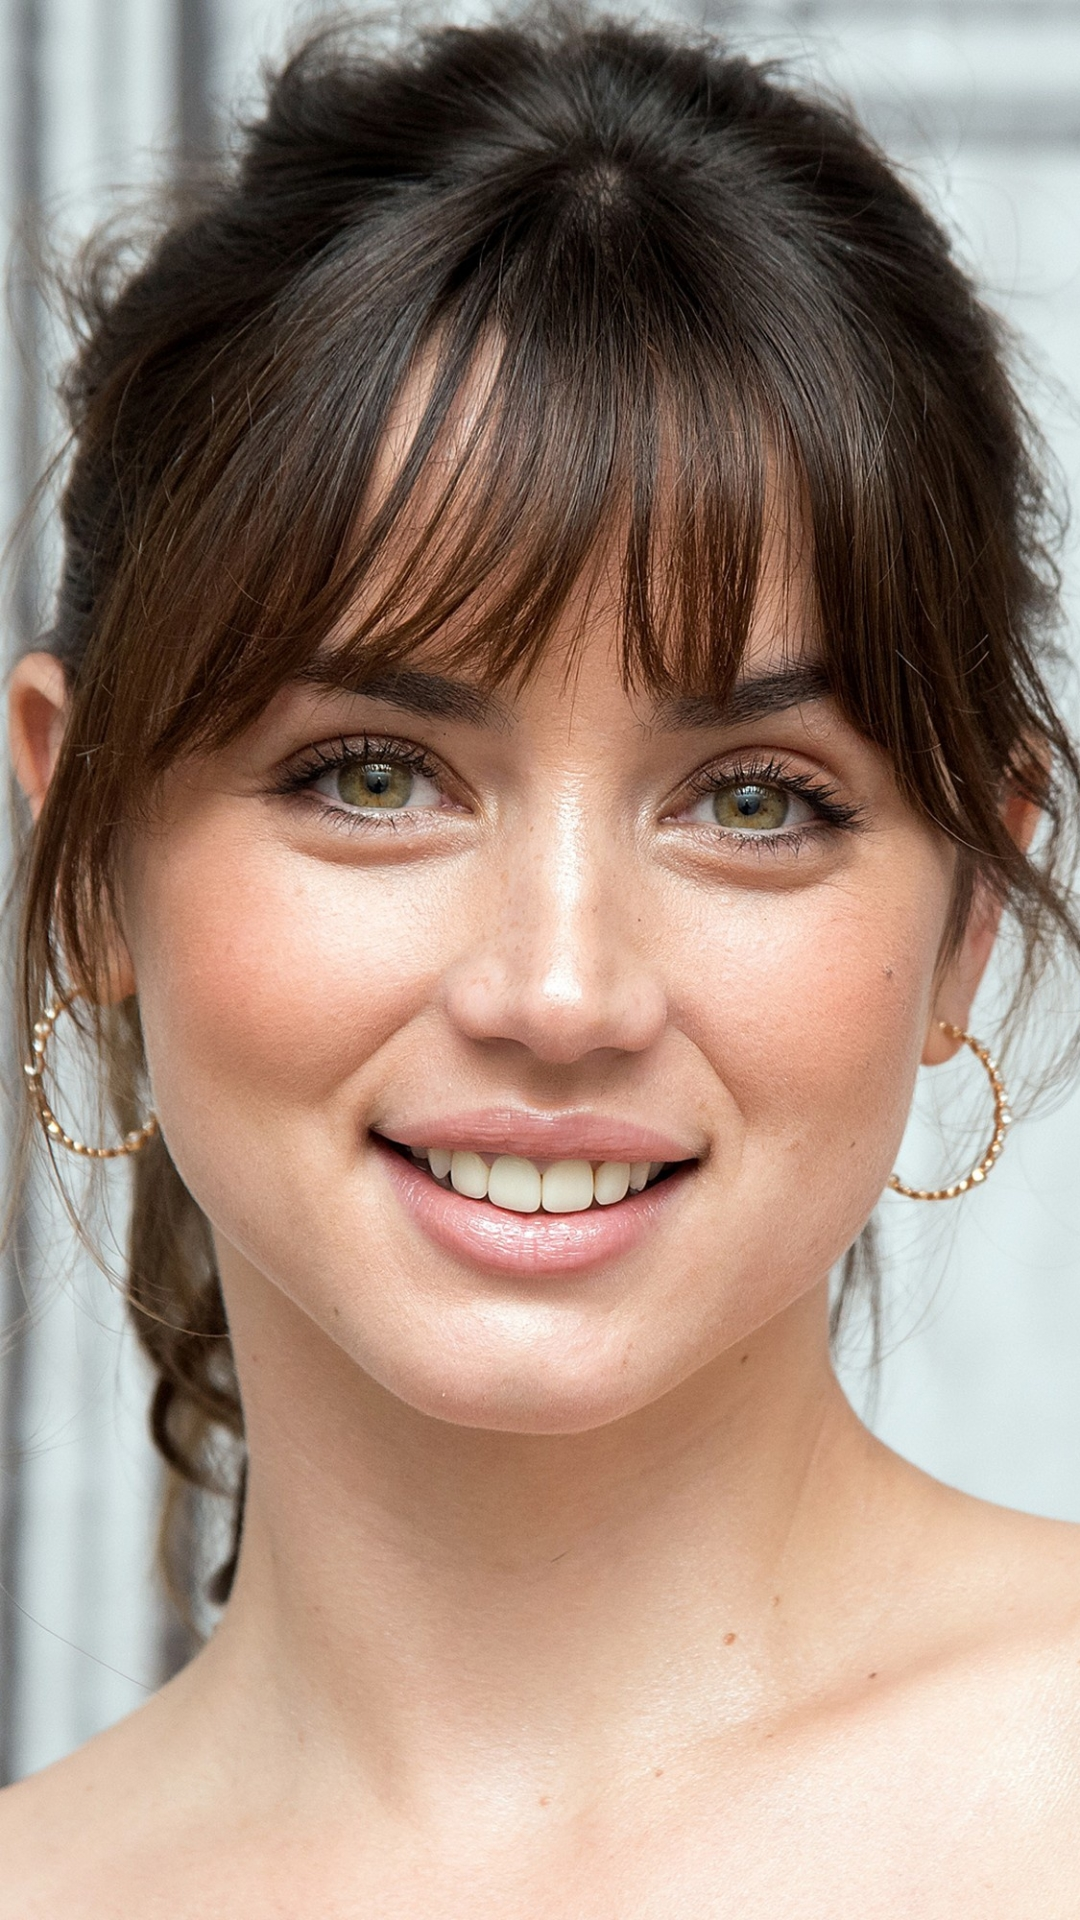 Ana De Armas Mobile Wallpaper Hd Mobile Walls